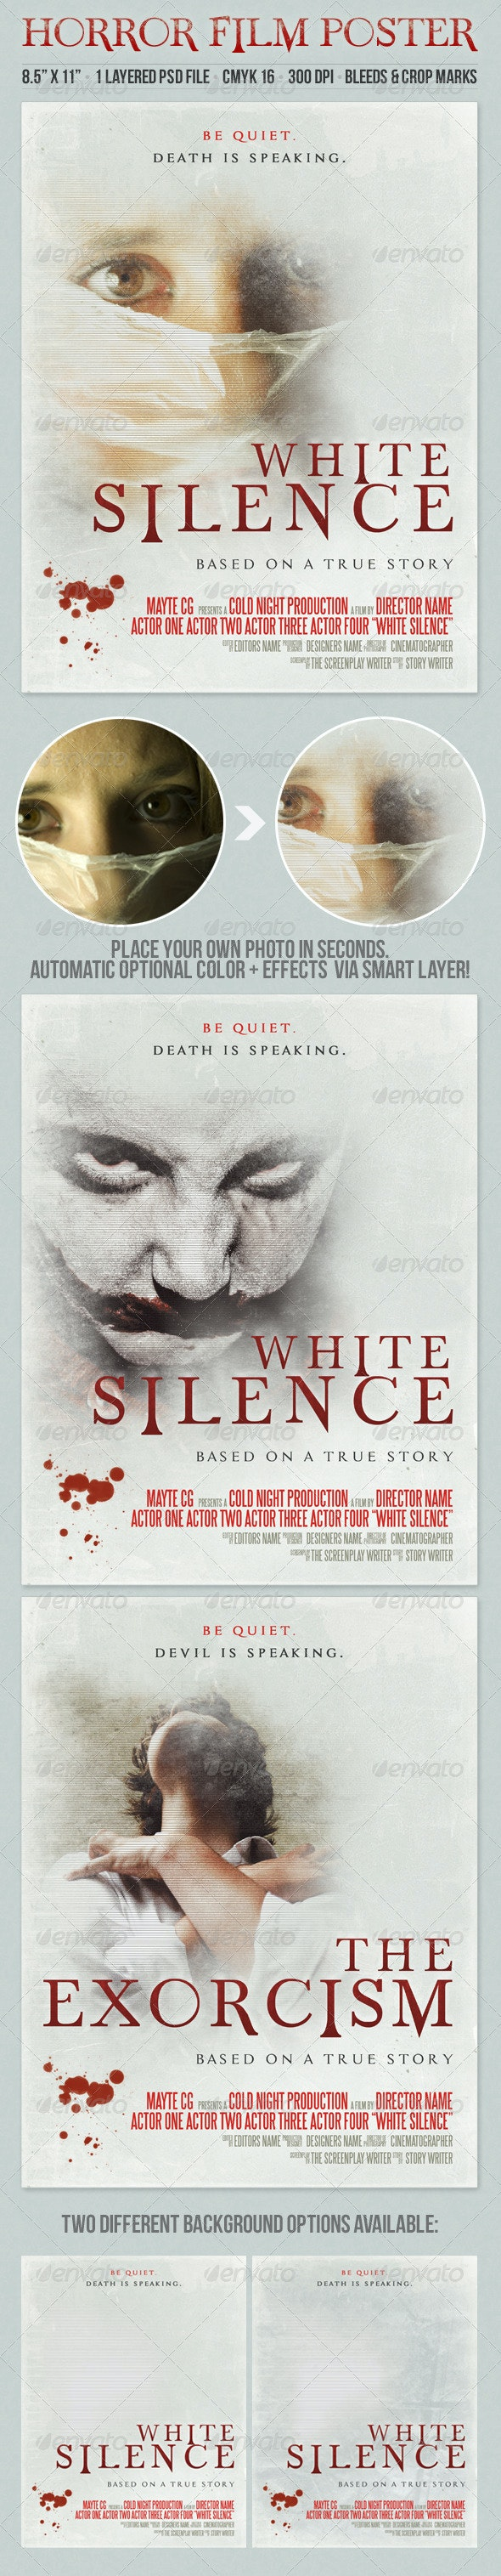 White Silence Grunge Style Horror Film Poster - Miscellaneous Events